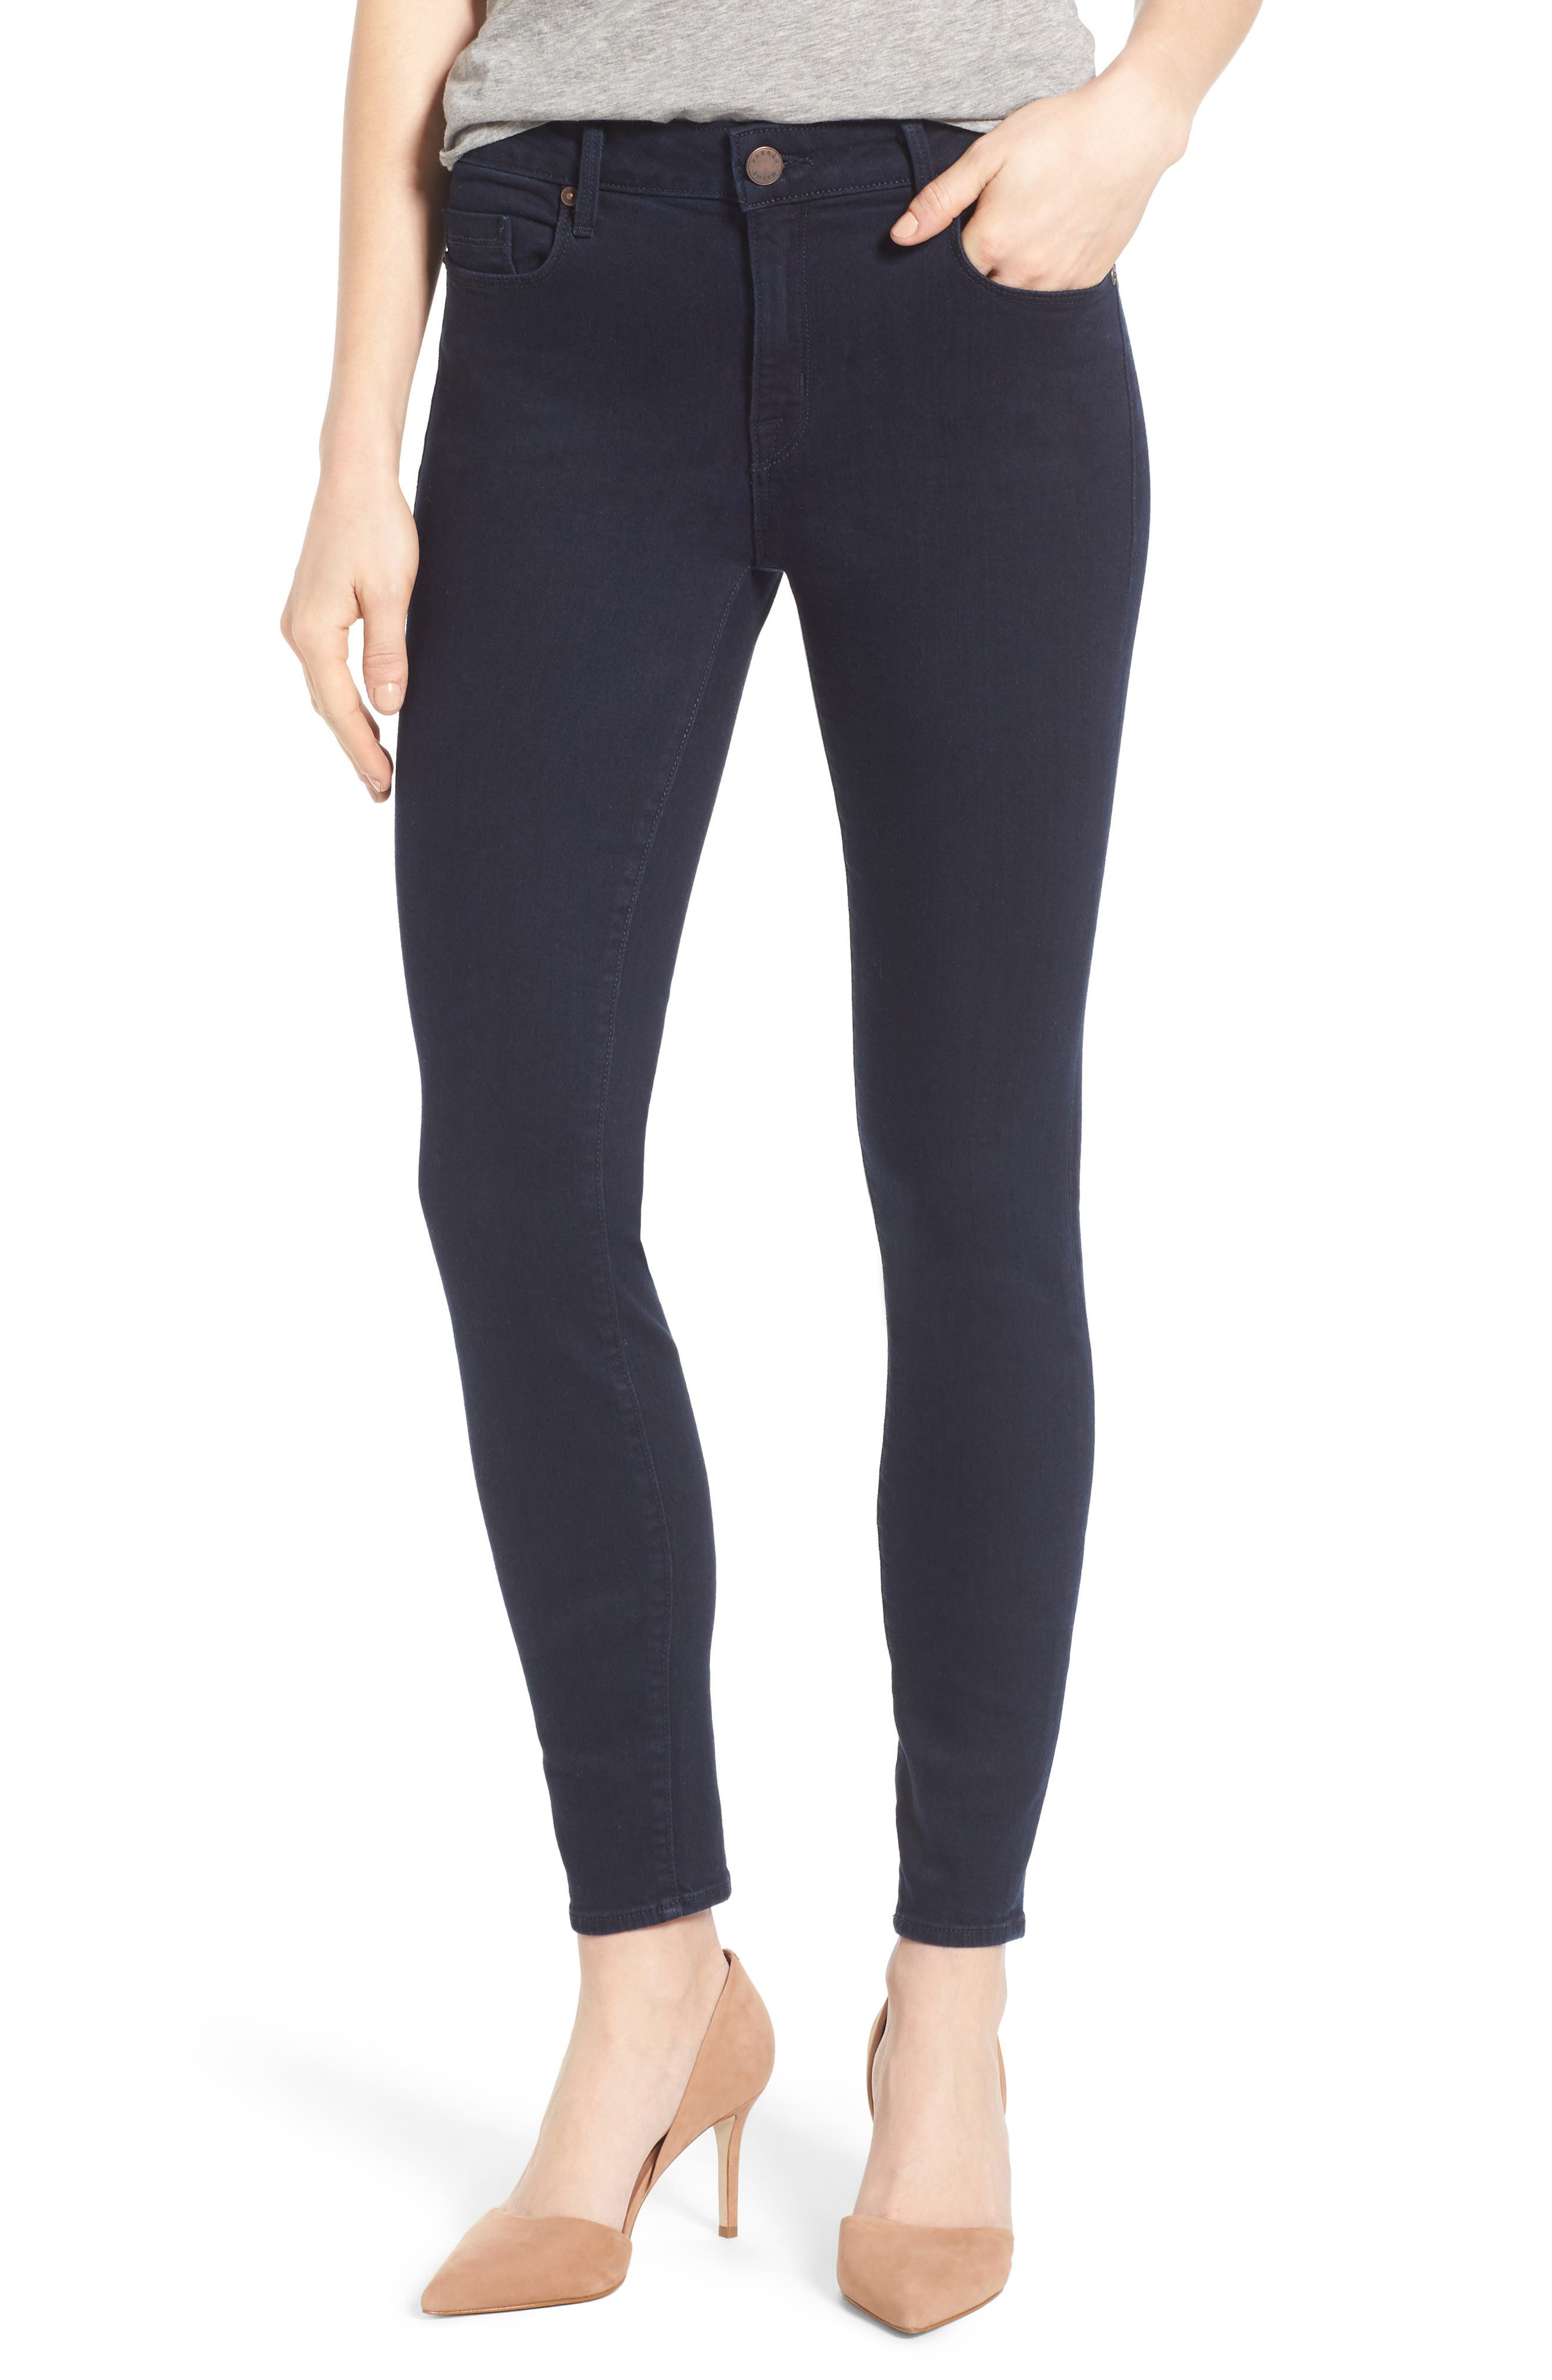 PARKER SMITH Ava Stretch Skinny Jeans, Main, color, 419